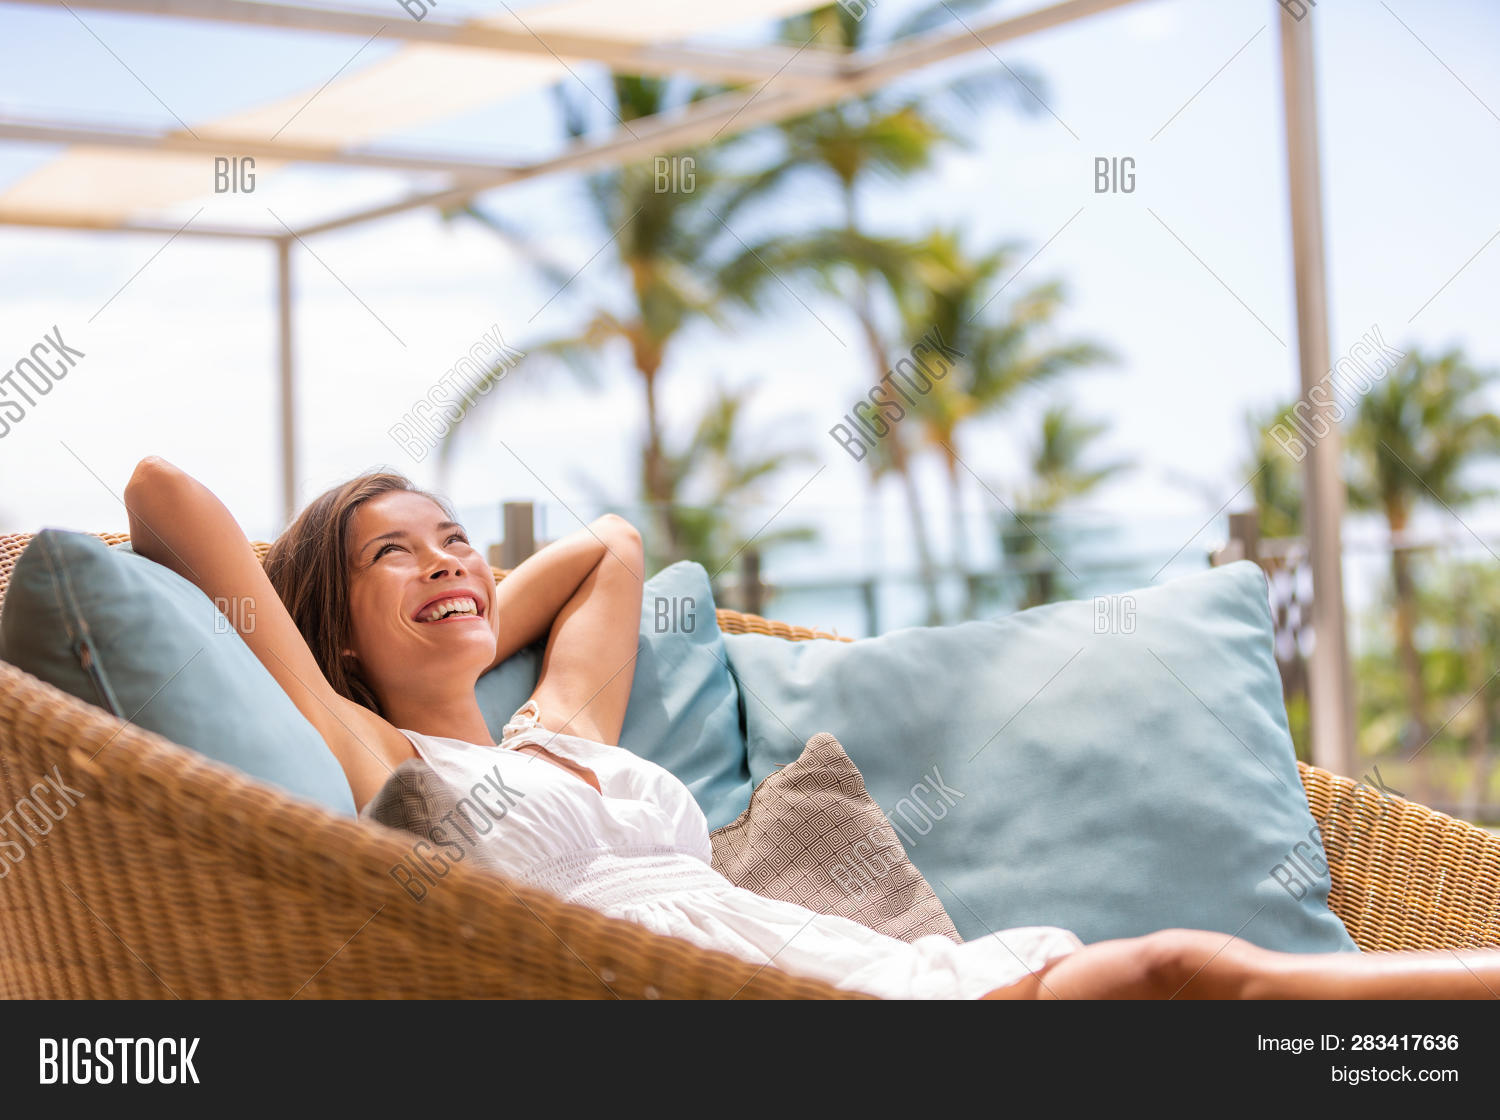 asian,beach,caribbean,chair,comfort,day,down,dream,dreaming,early,end,expat,furniture,getaway,girl,happy,hawaii,high,holiday,home,hotel,life,lifestyle,living,lounge,lounging,luxury,lying,outdoor,outside,paradise,patio,people,person,pillows,relax,relaxing,resort,retired,retirement,rich,room,sitting,sofa,summer,terrace,travel,vacation,weekend,woman